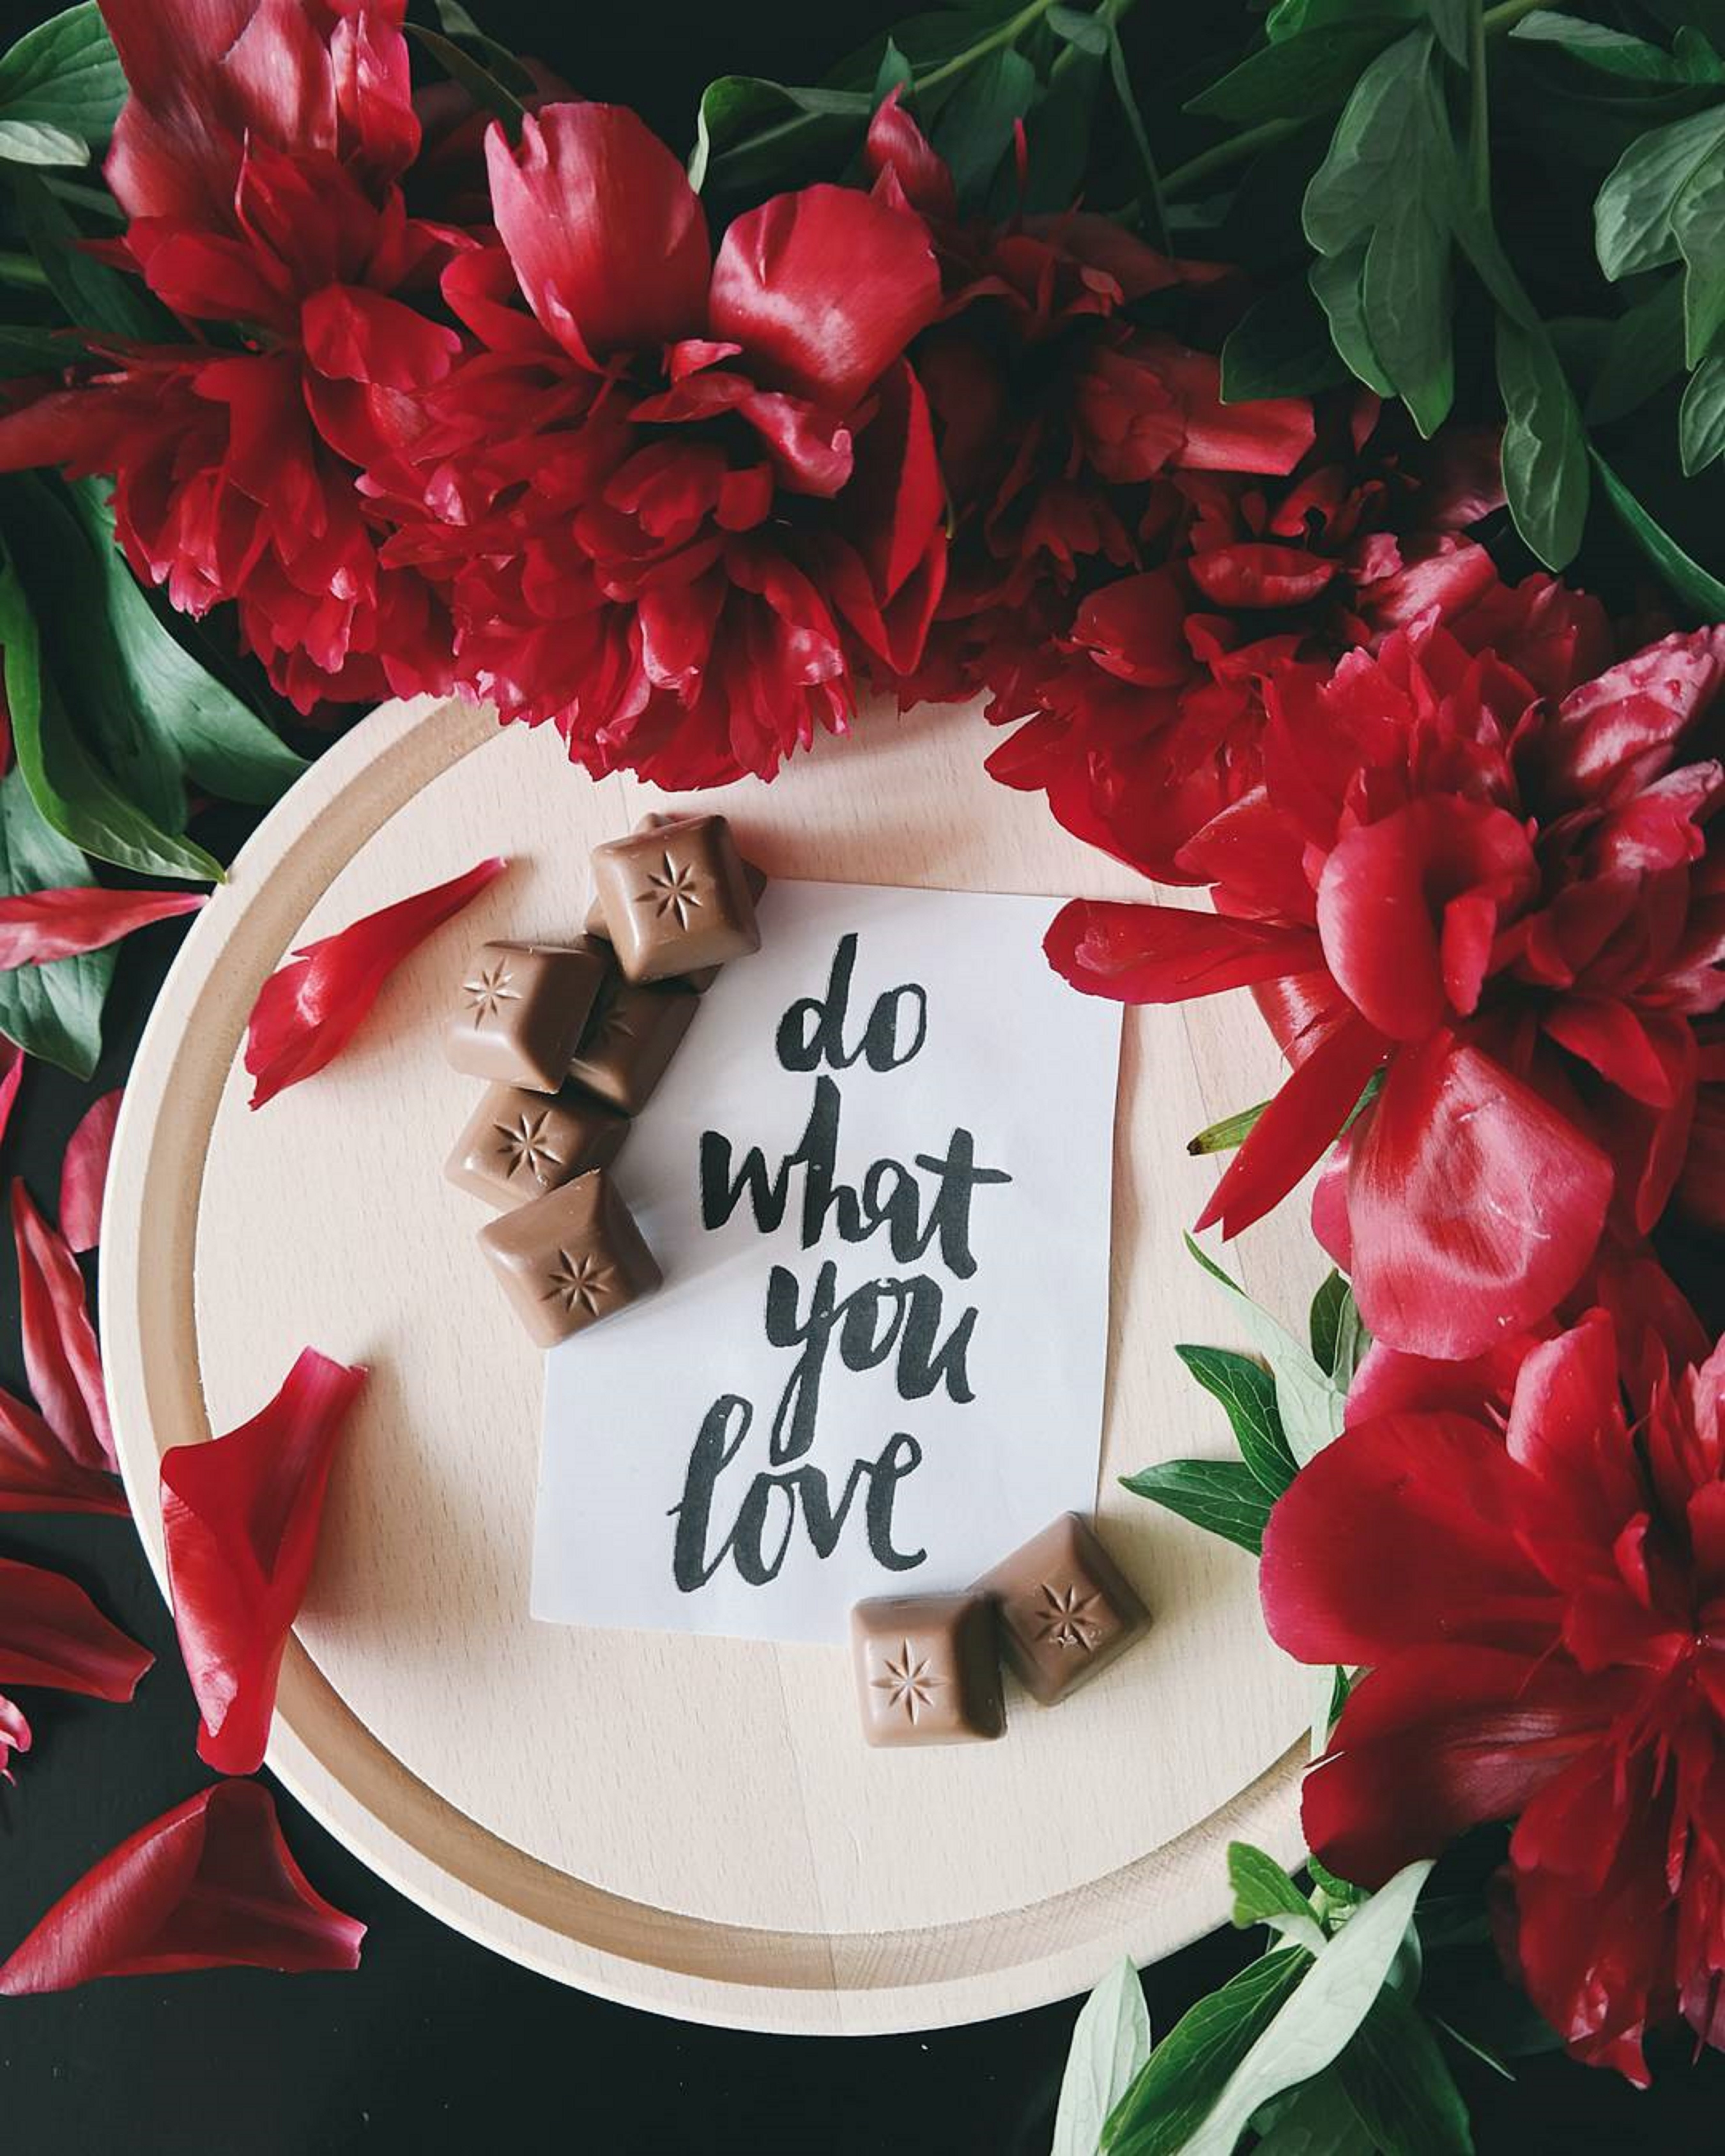 """A note on a piece of paper on top of a plate next to red flowers that reads """"Do what you love."""""""